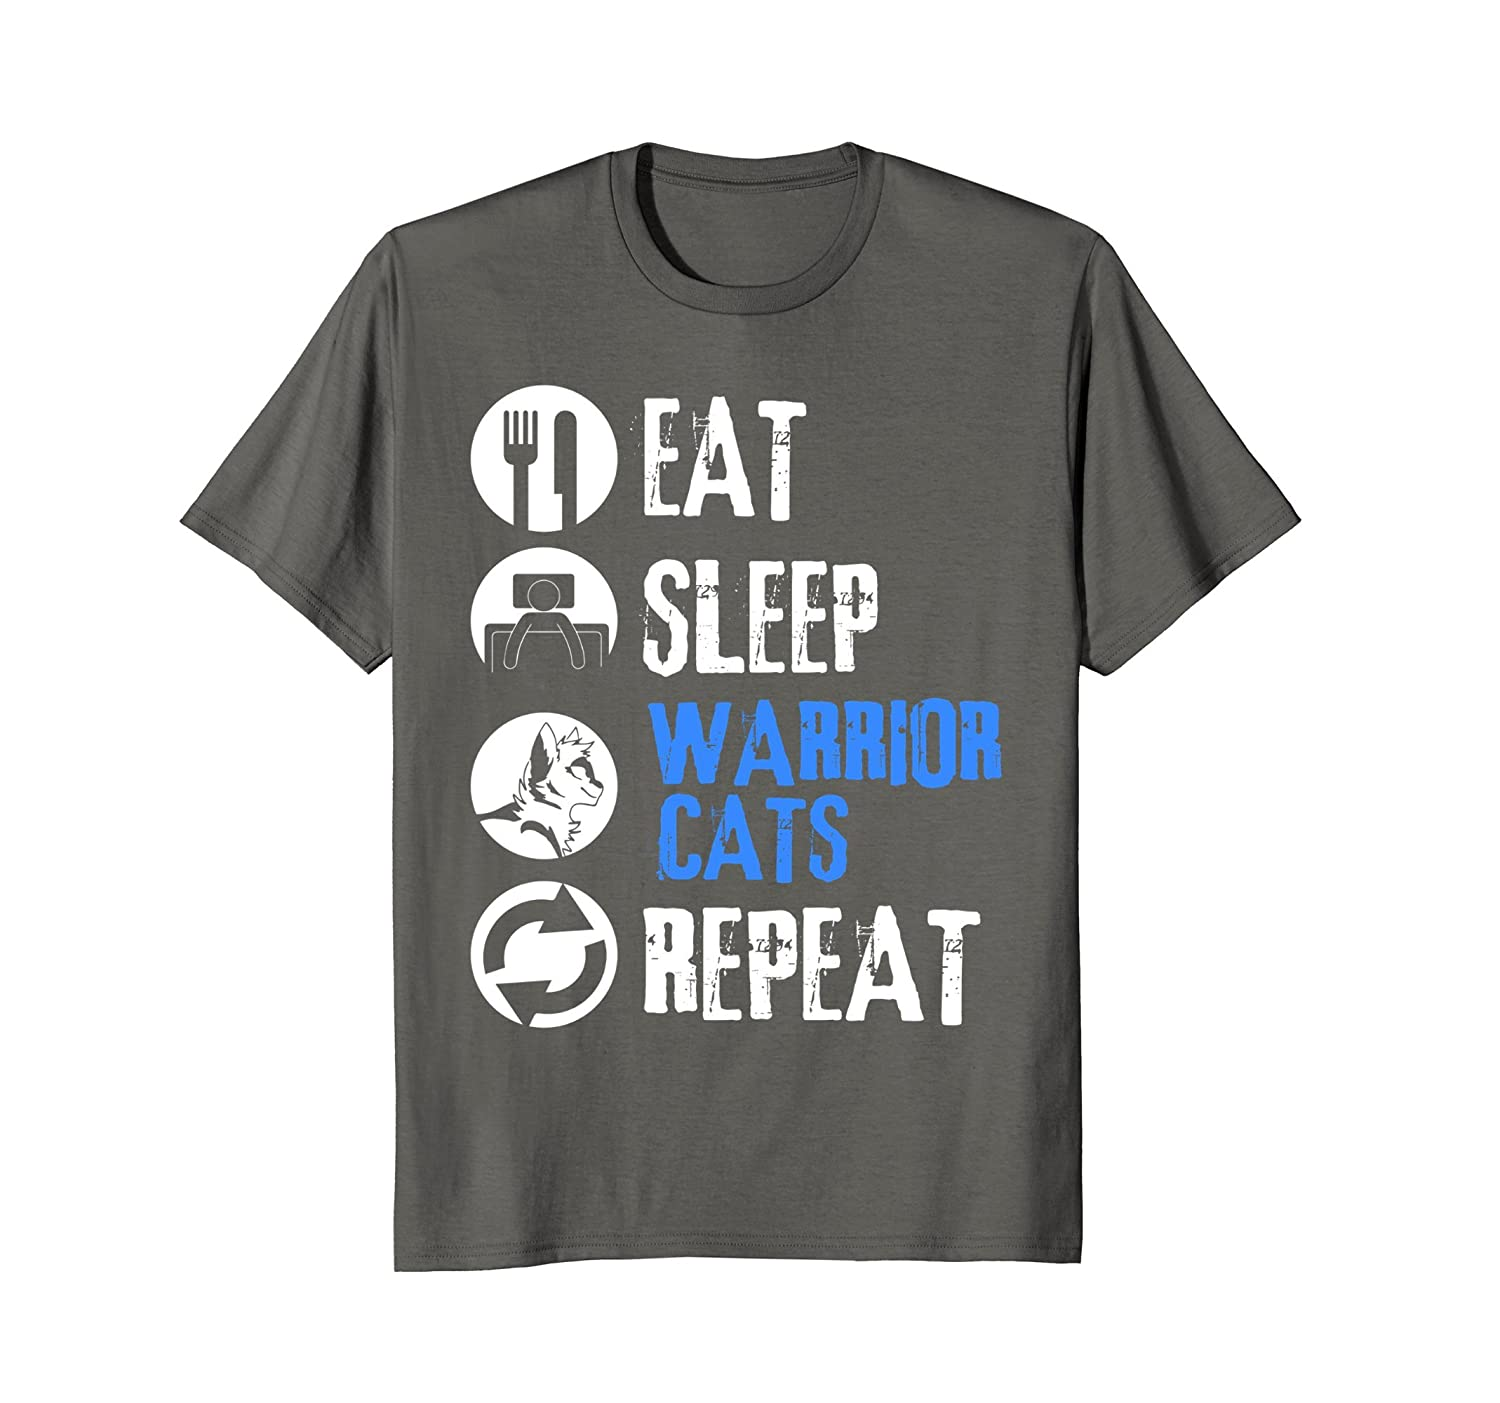 2a4d5772b Funny Eat Sleep Warrior Cats Repeat Cat Lover T-Shirt-ah my shirt one